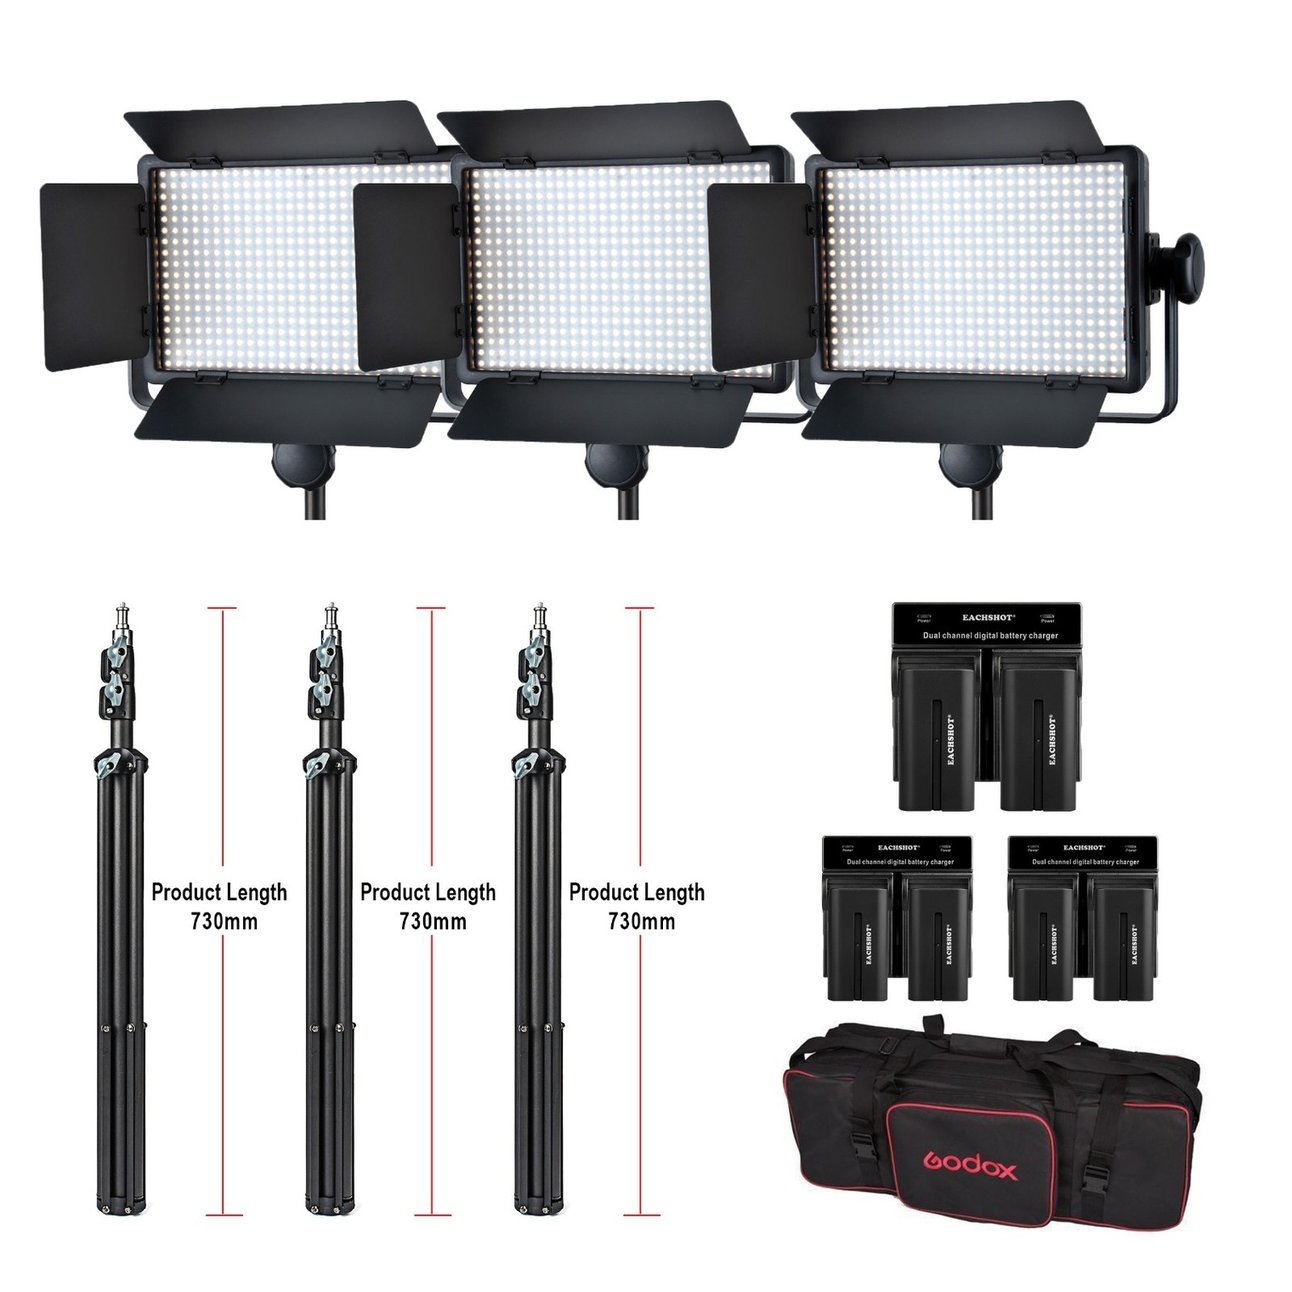 Godox 3pcs LED500C Kit LED Video Continuous Light Lamp Panel + batteries + battery charger + stand tripod with carry Bag godox ar400 400w li ion battery lcd panel powerful macro led ring flash speedlite video light kit with free dhl ems